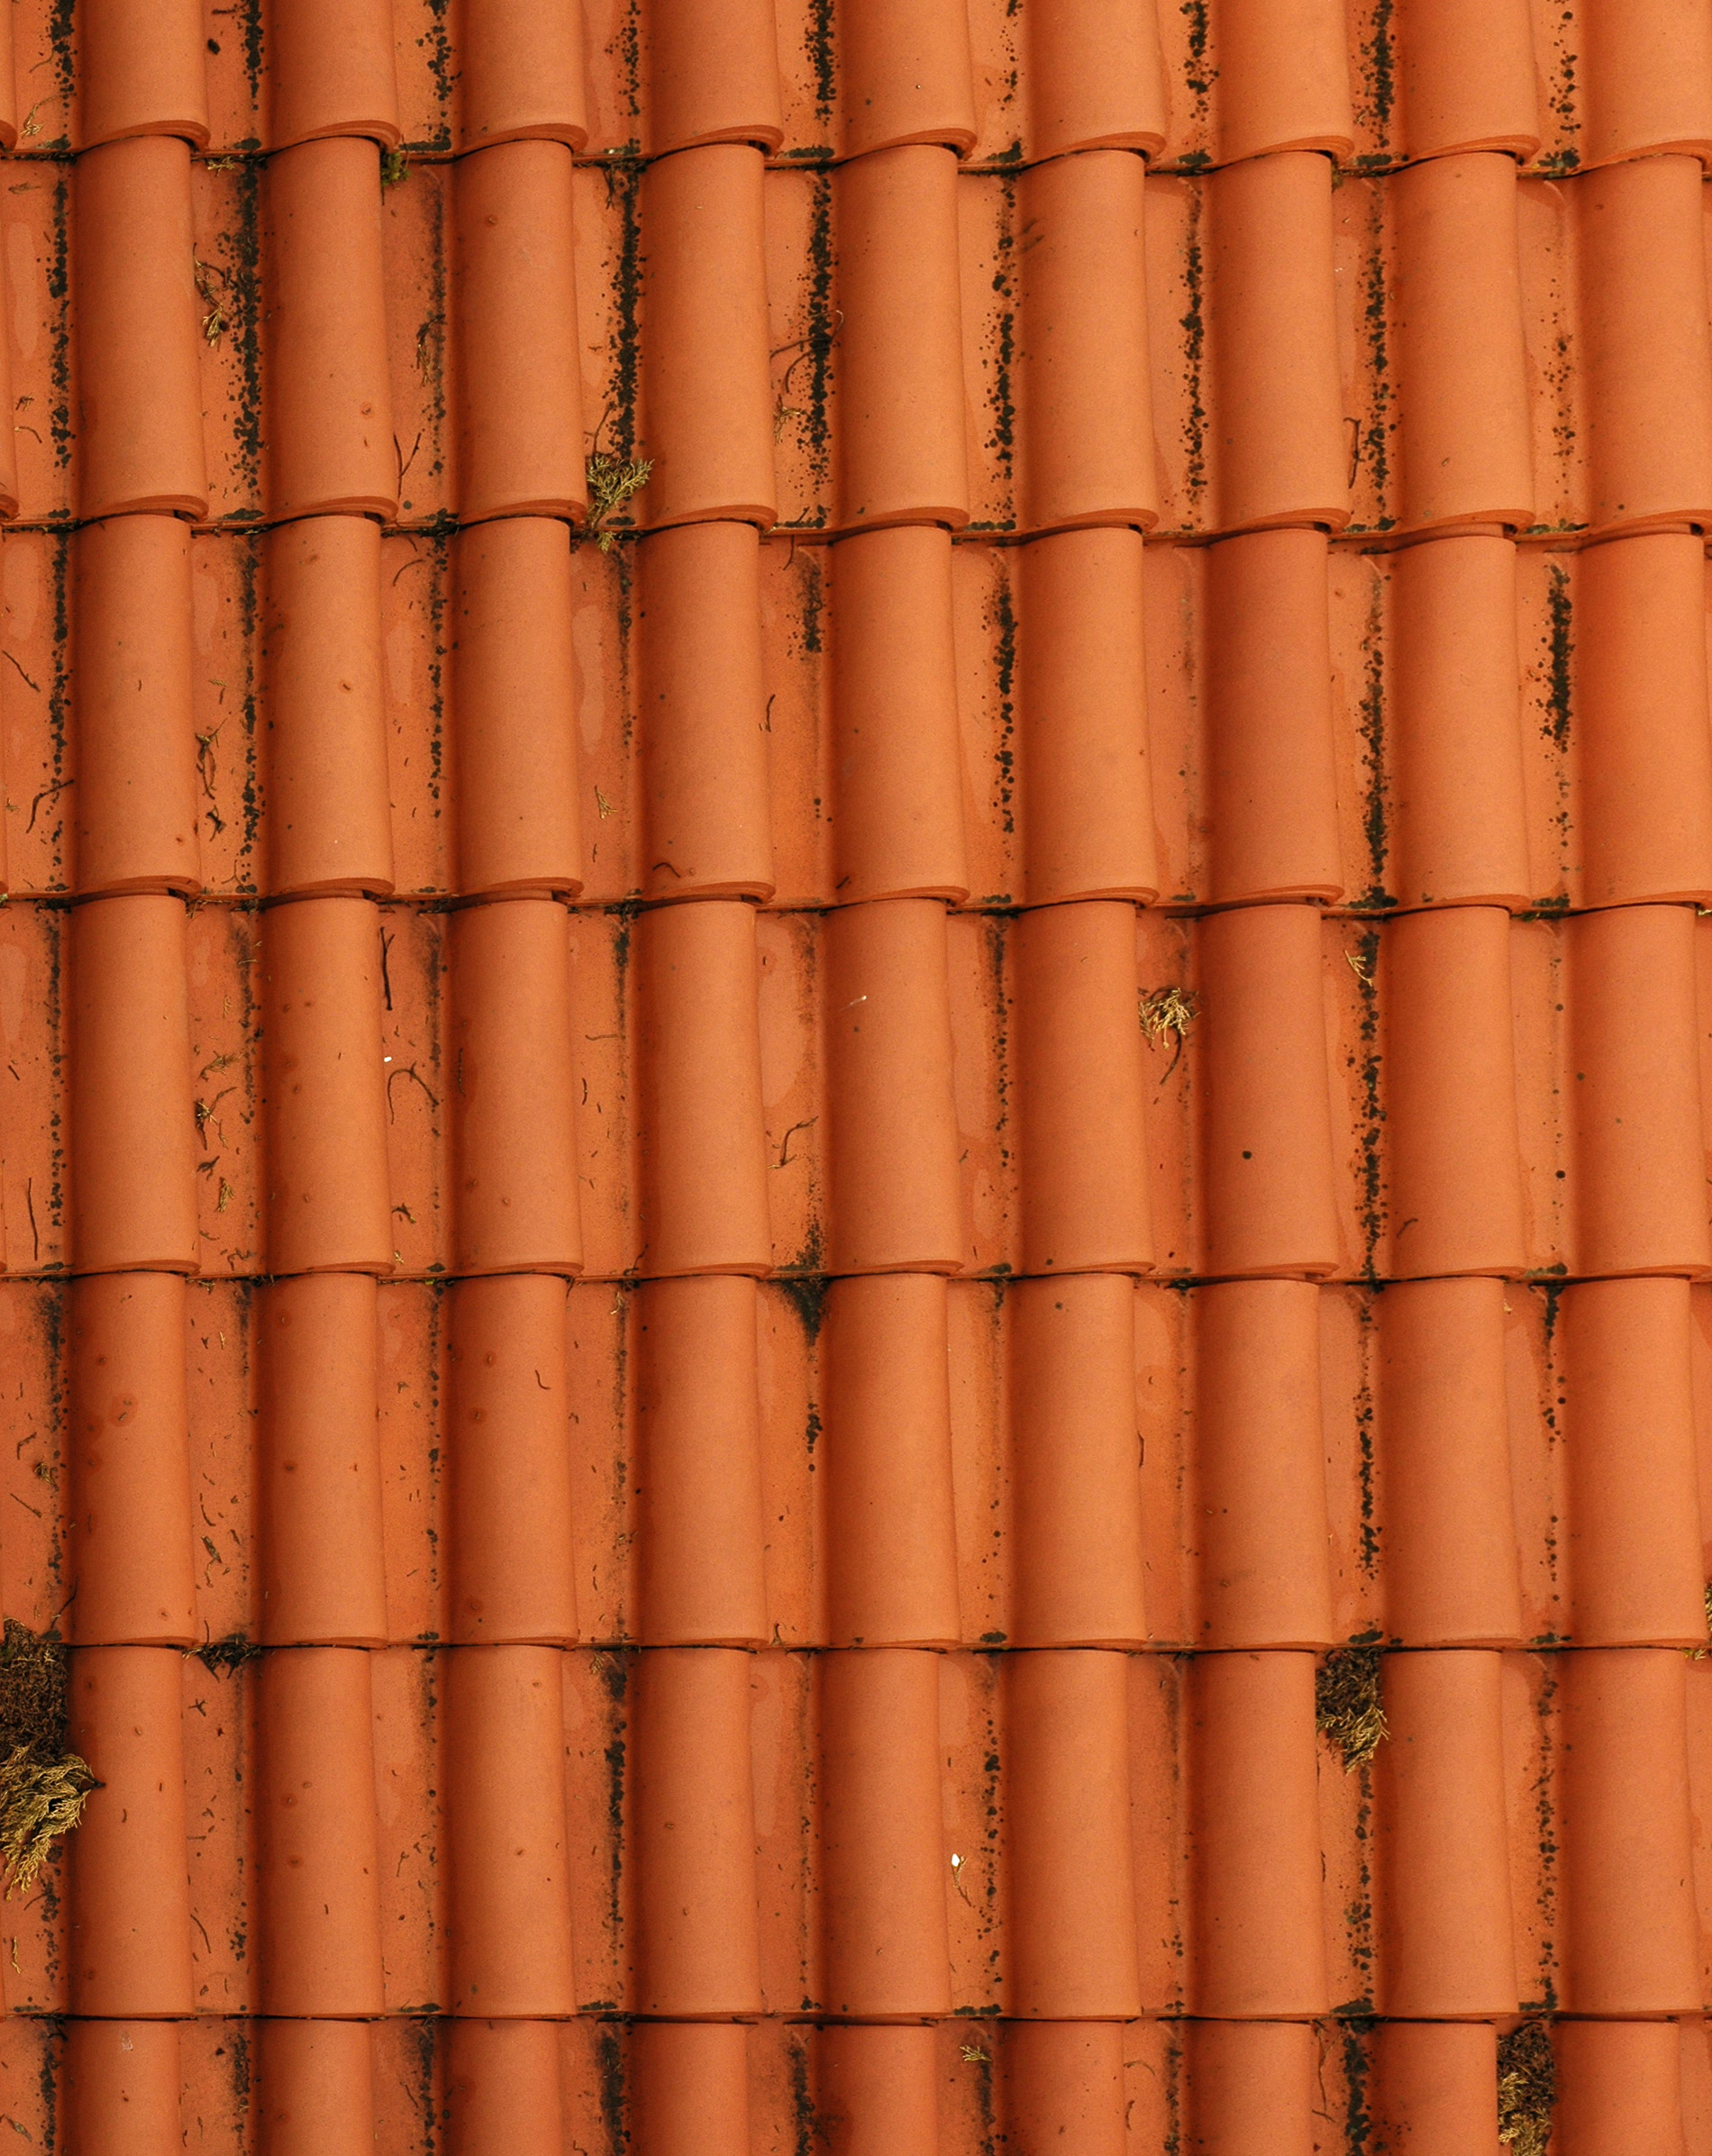 Roof tile texture image background